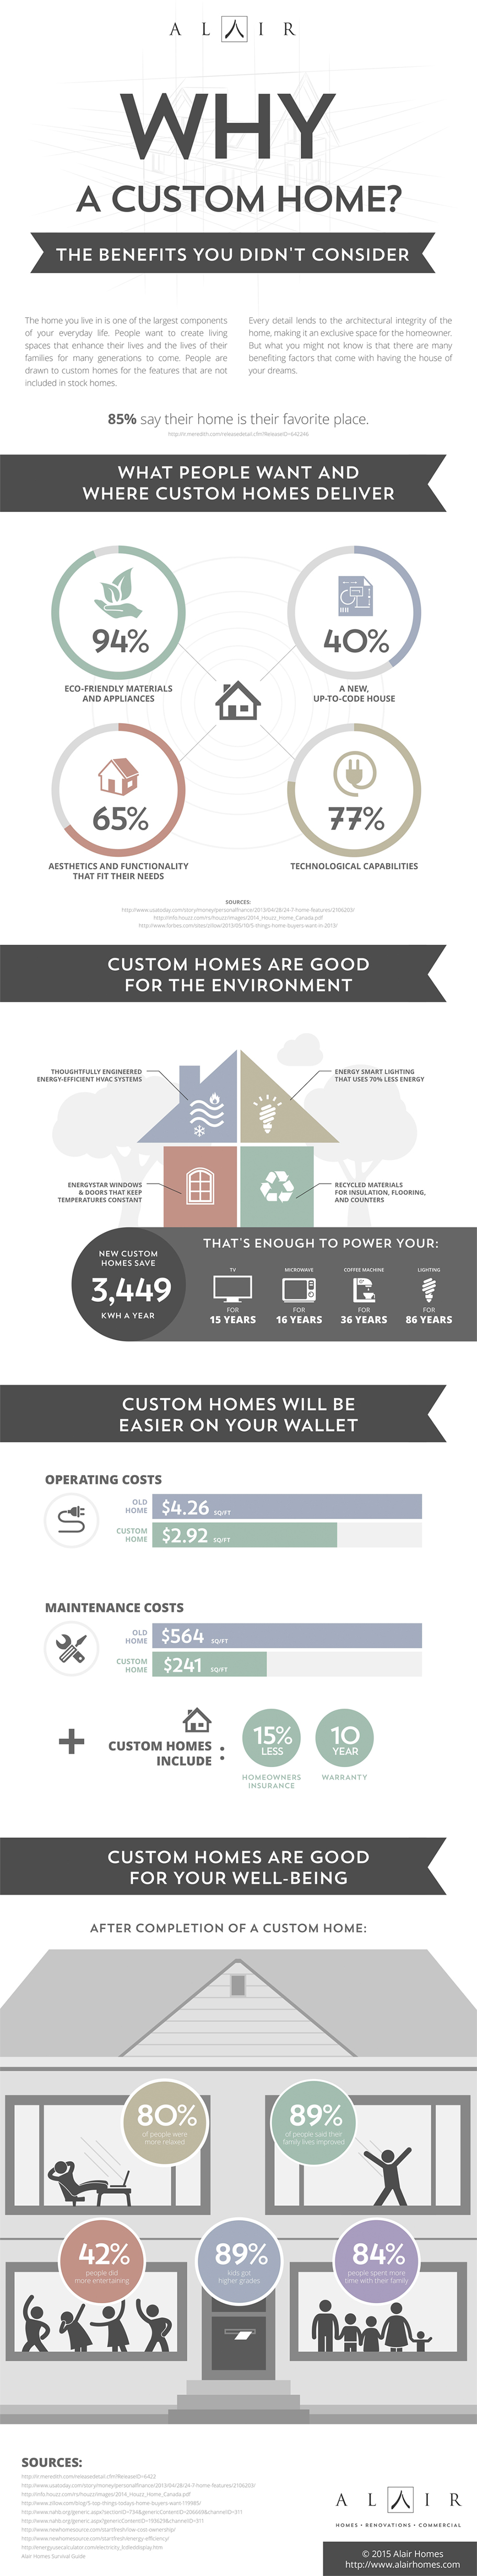 Benefits of a Custom Home